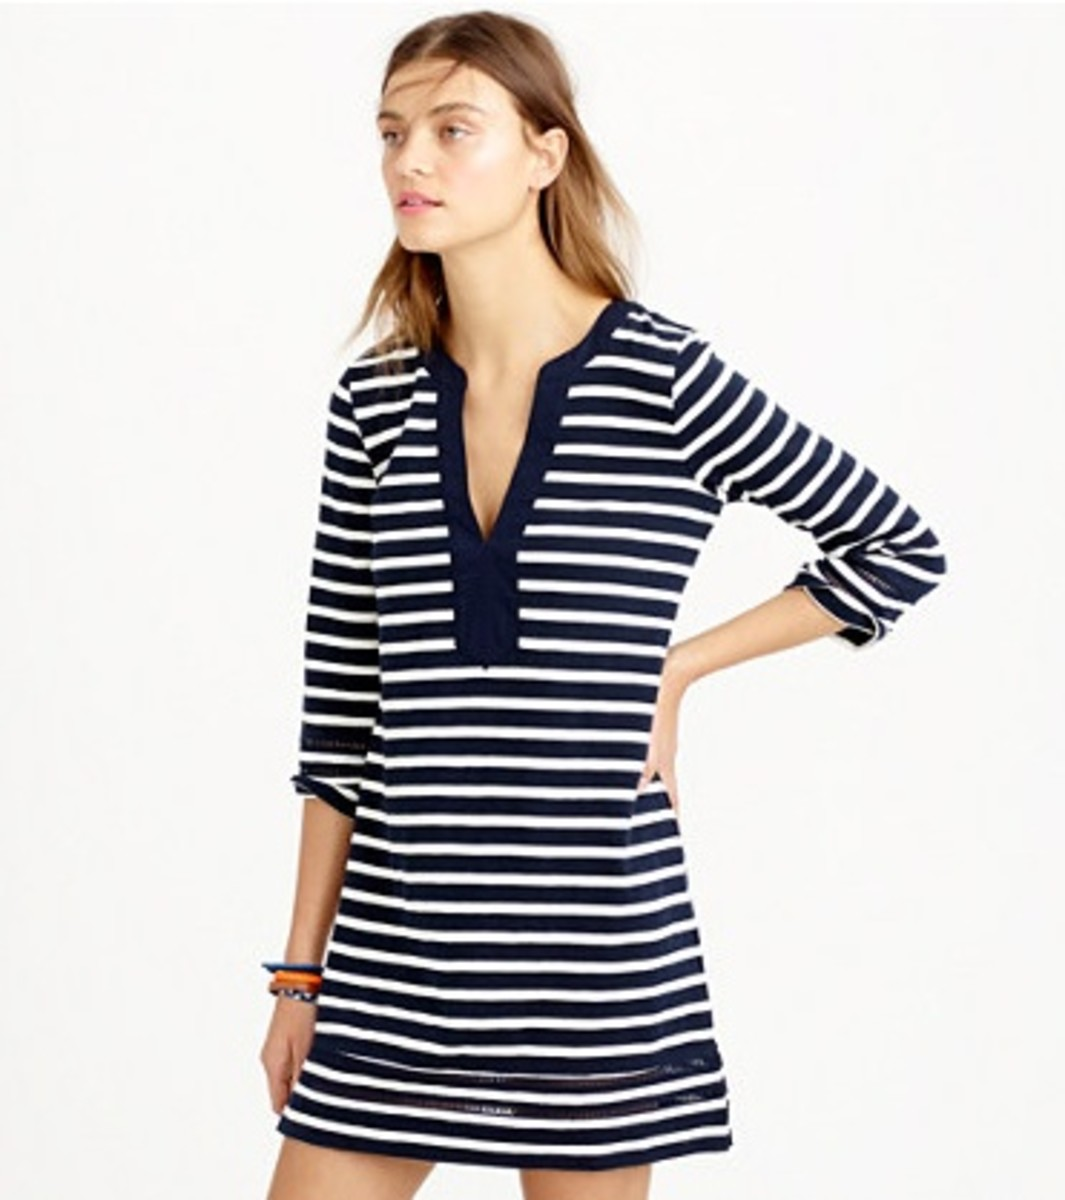 J.Crew Striped Tunic